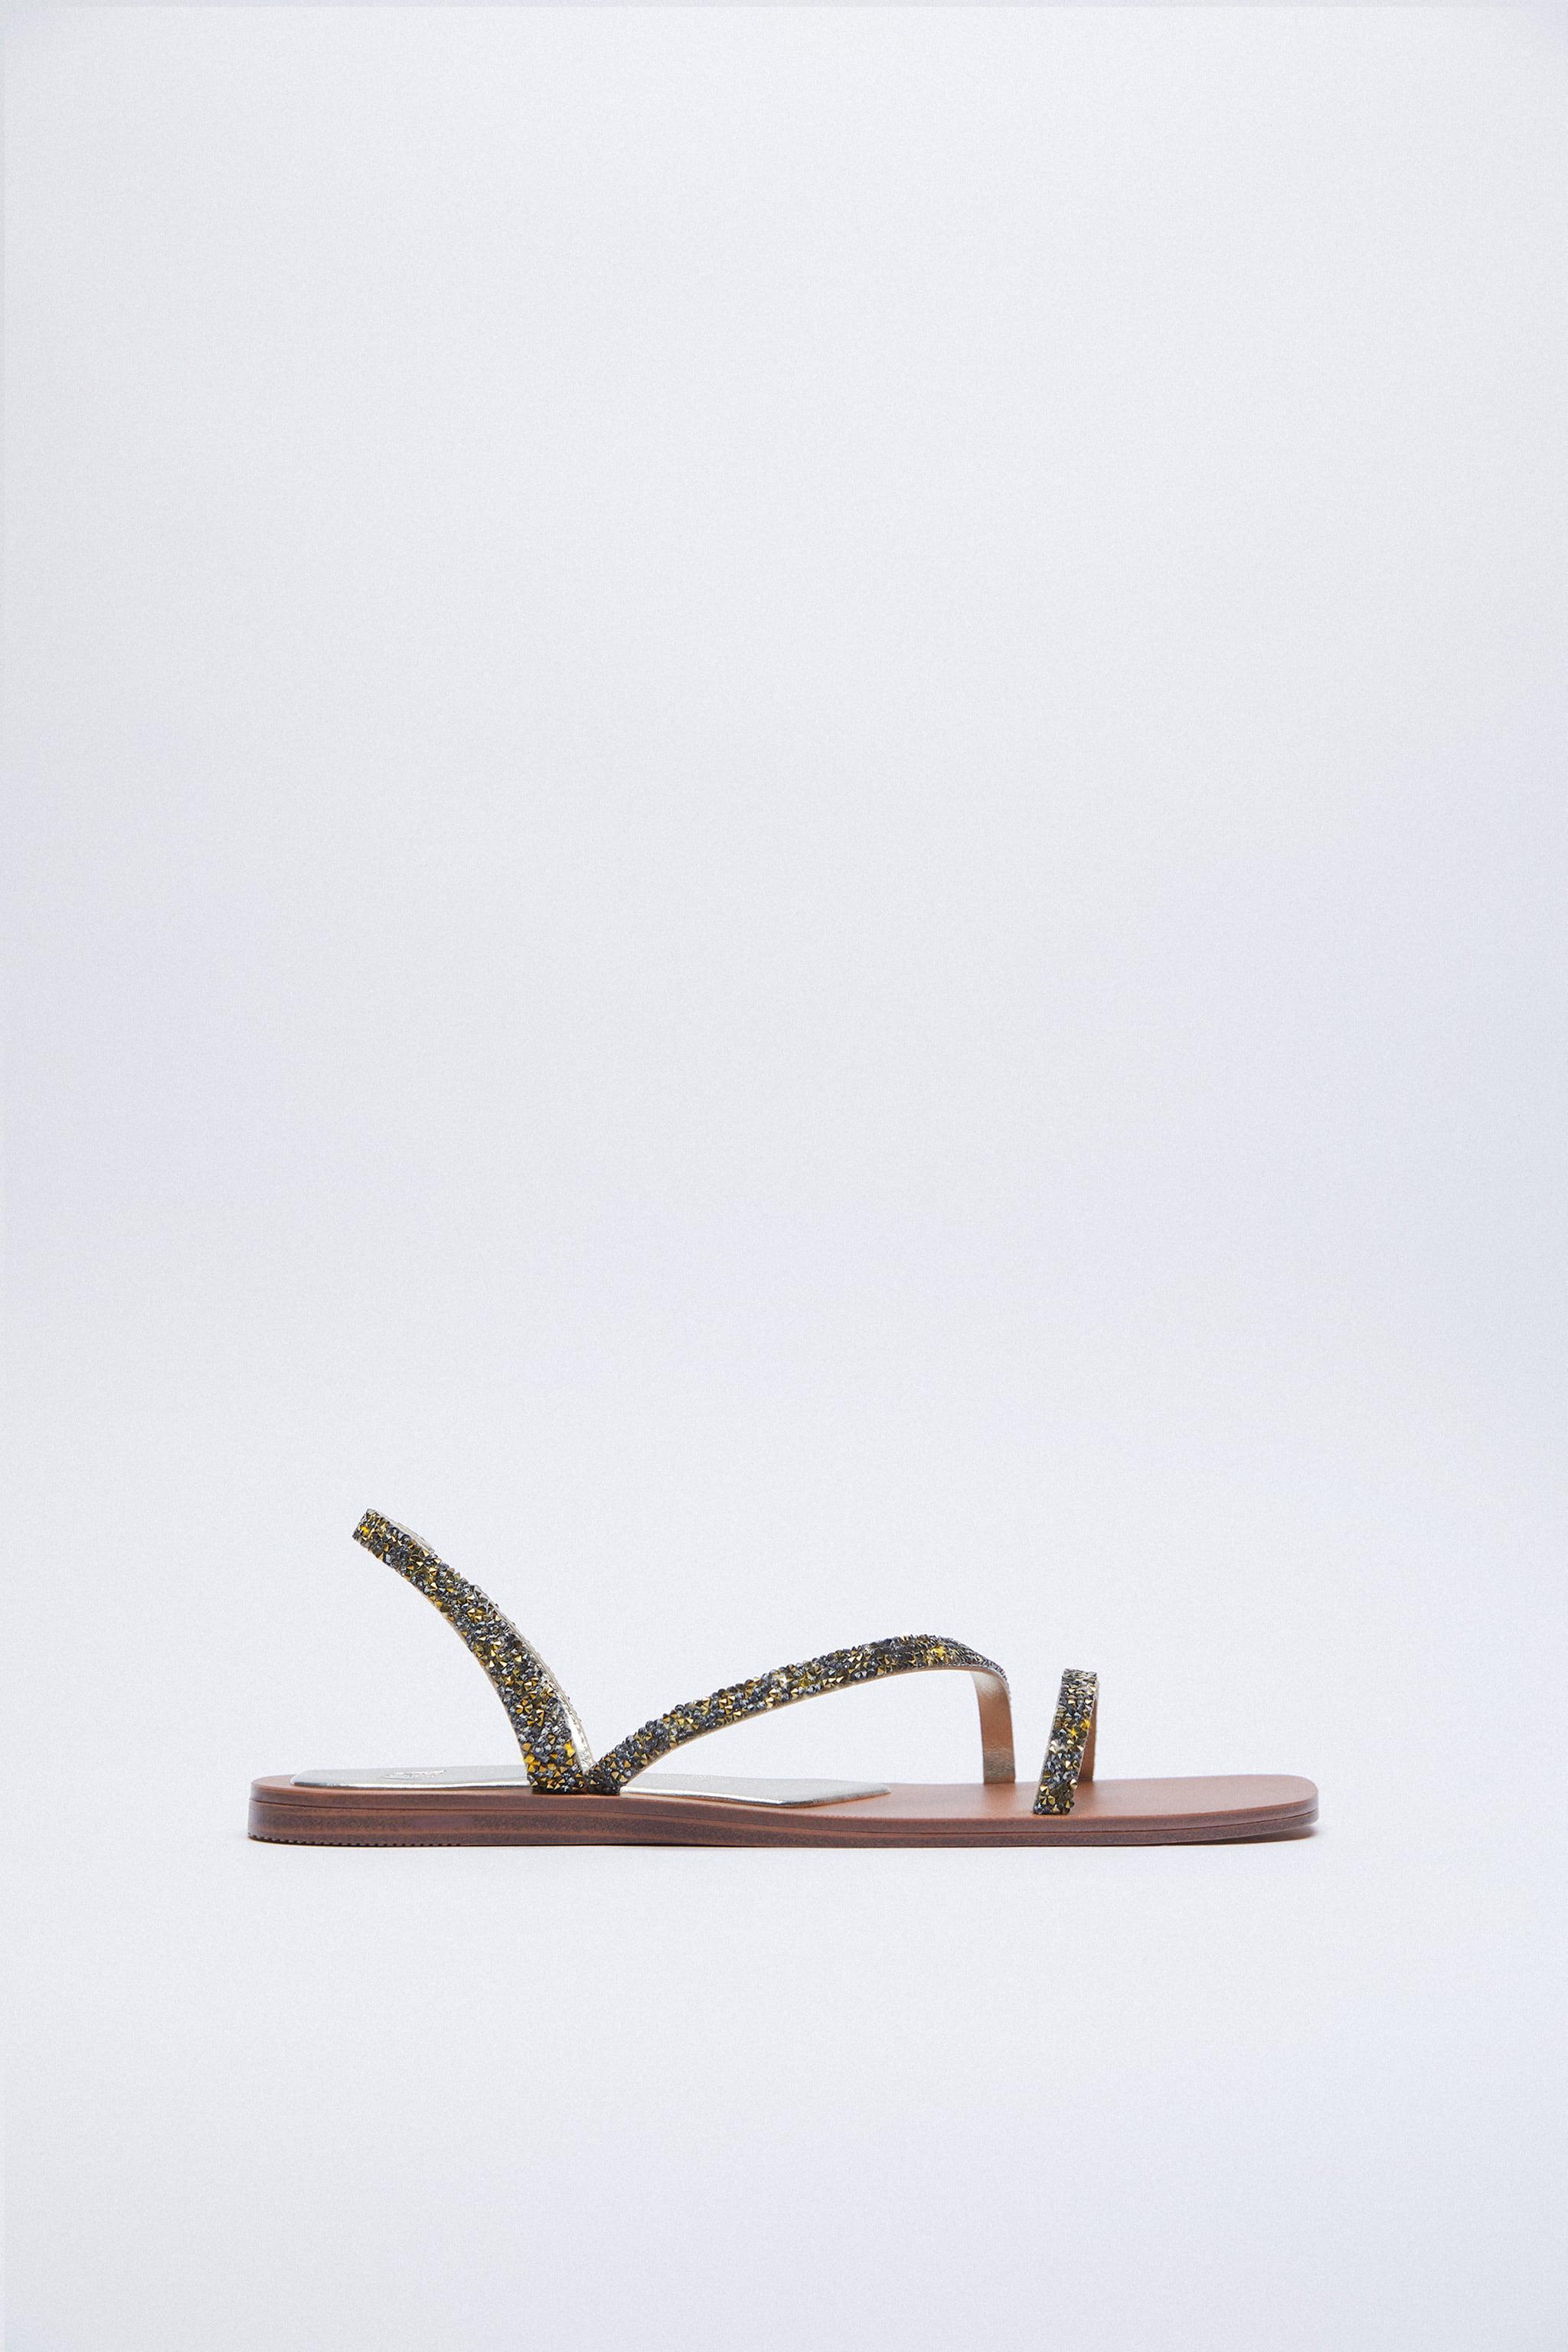 SPARKLY LOW HEELED SANDALS 0